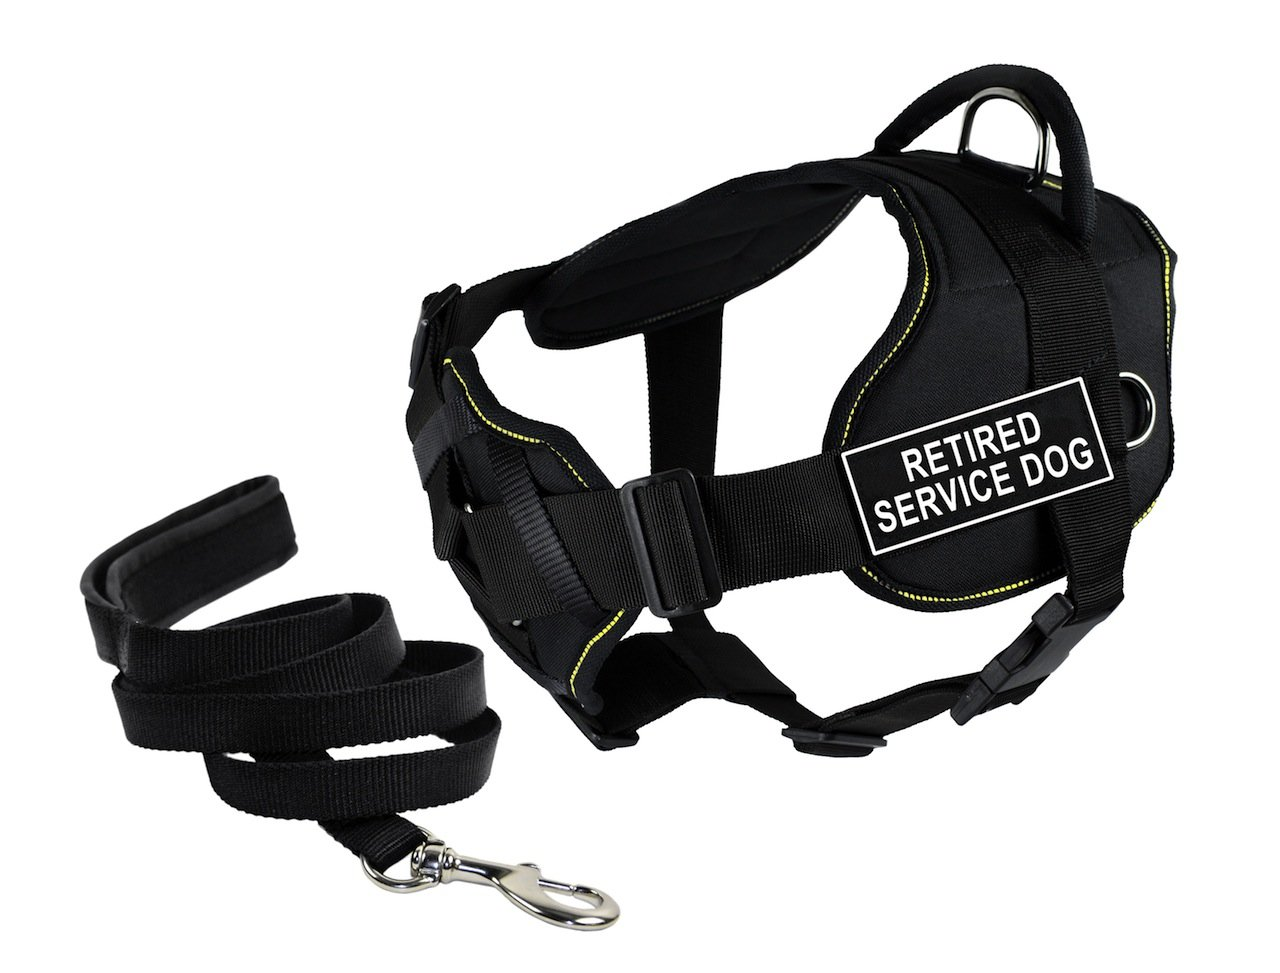 Dean & Tyler's DT Fun Chest Support RETIRED SERVICE DOG Harness, Small, with 6 ft Padded Puppy Leash.